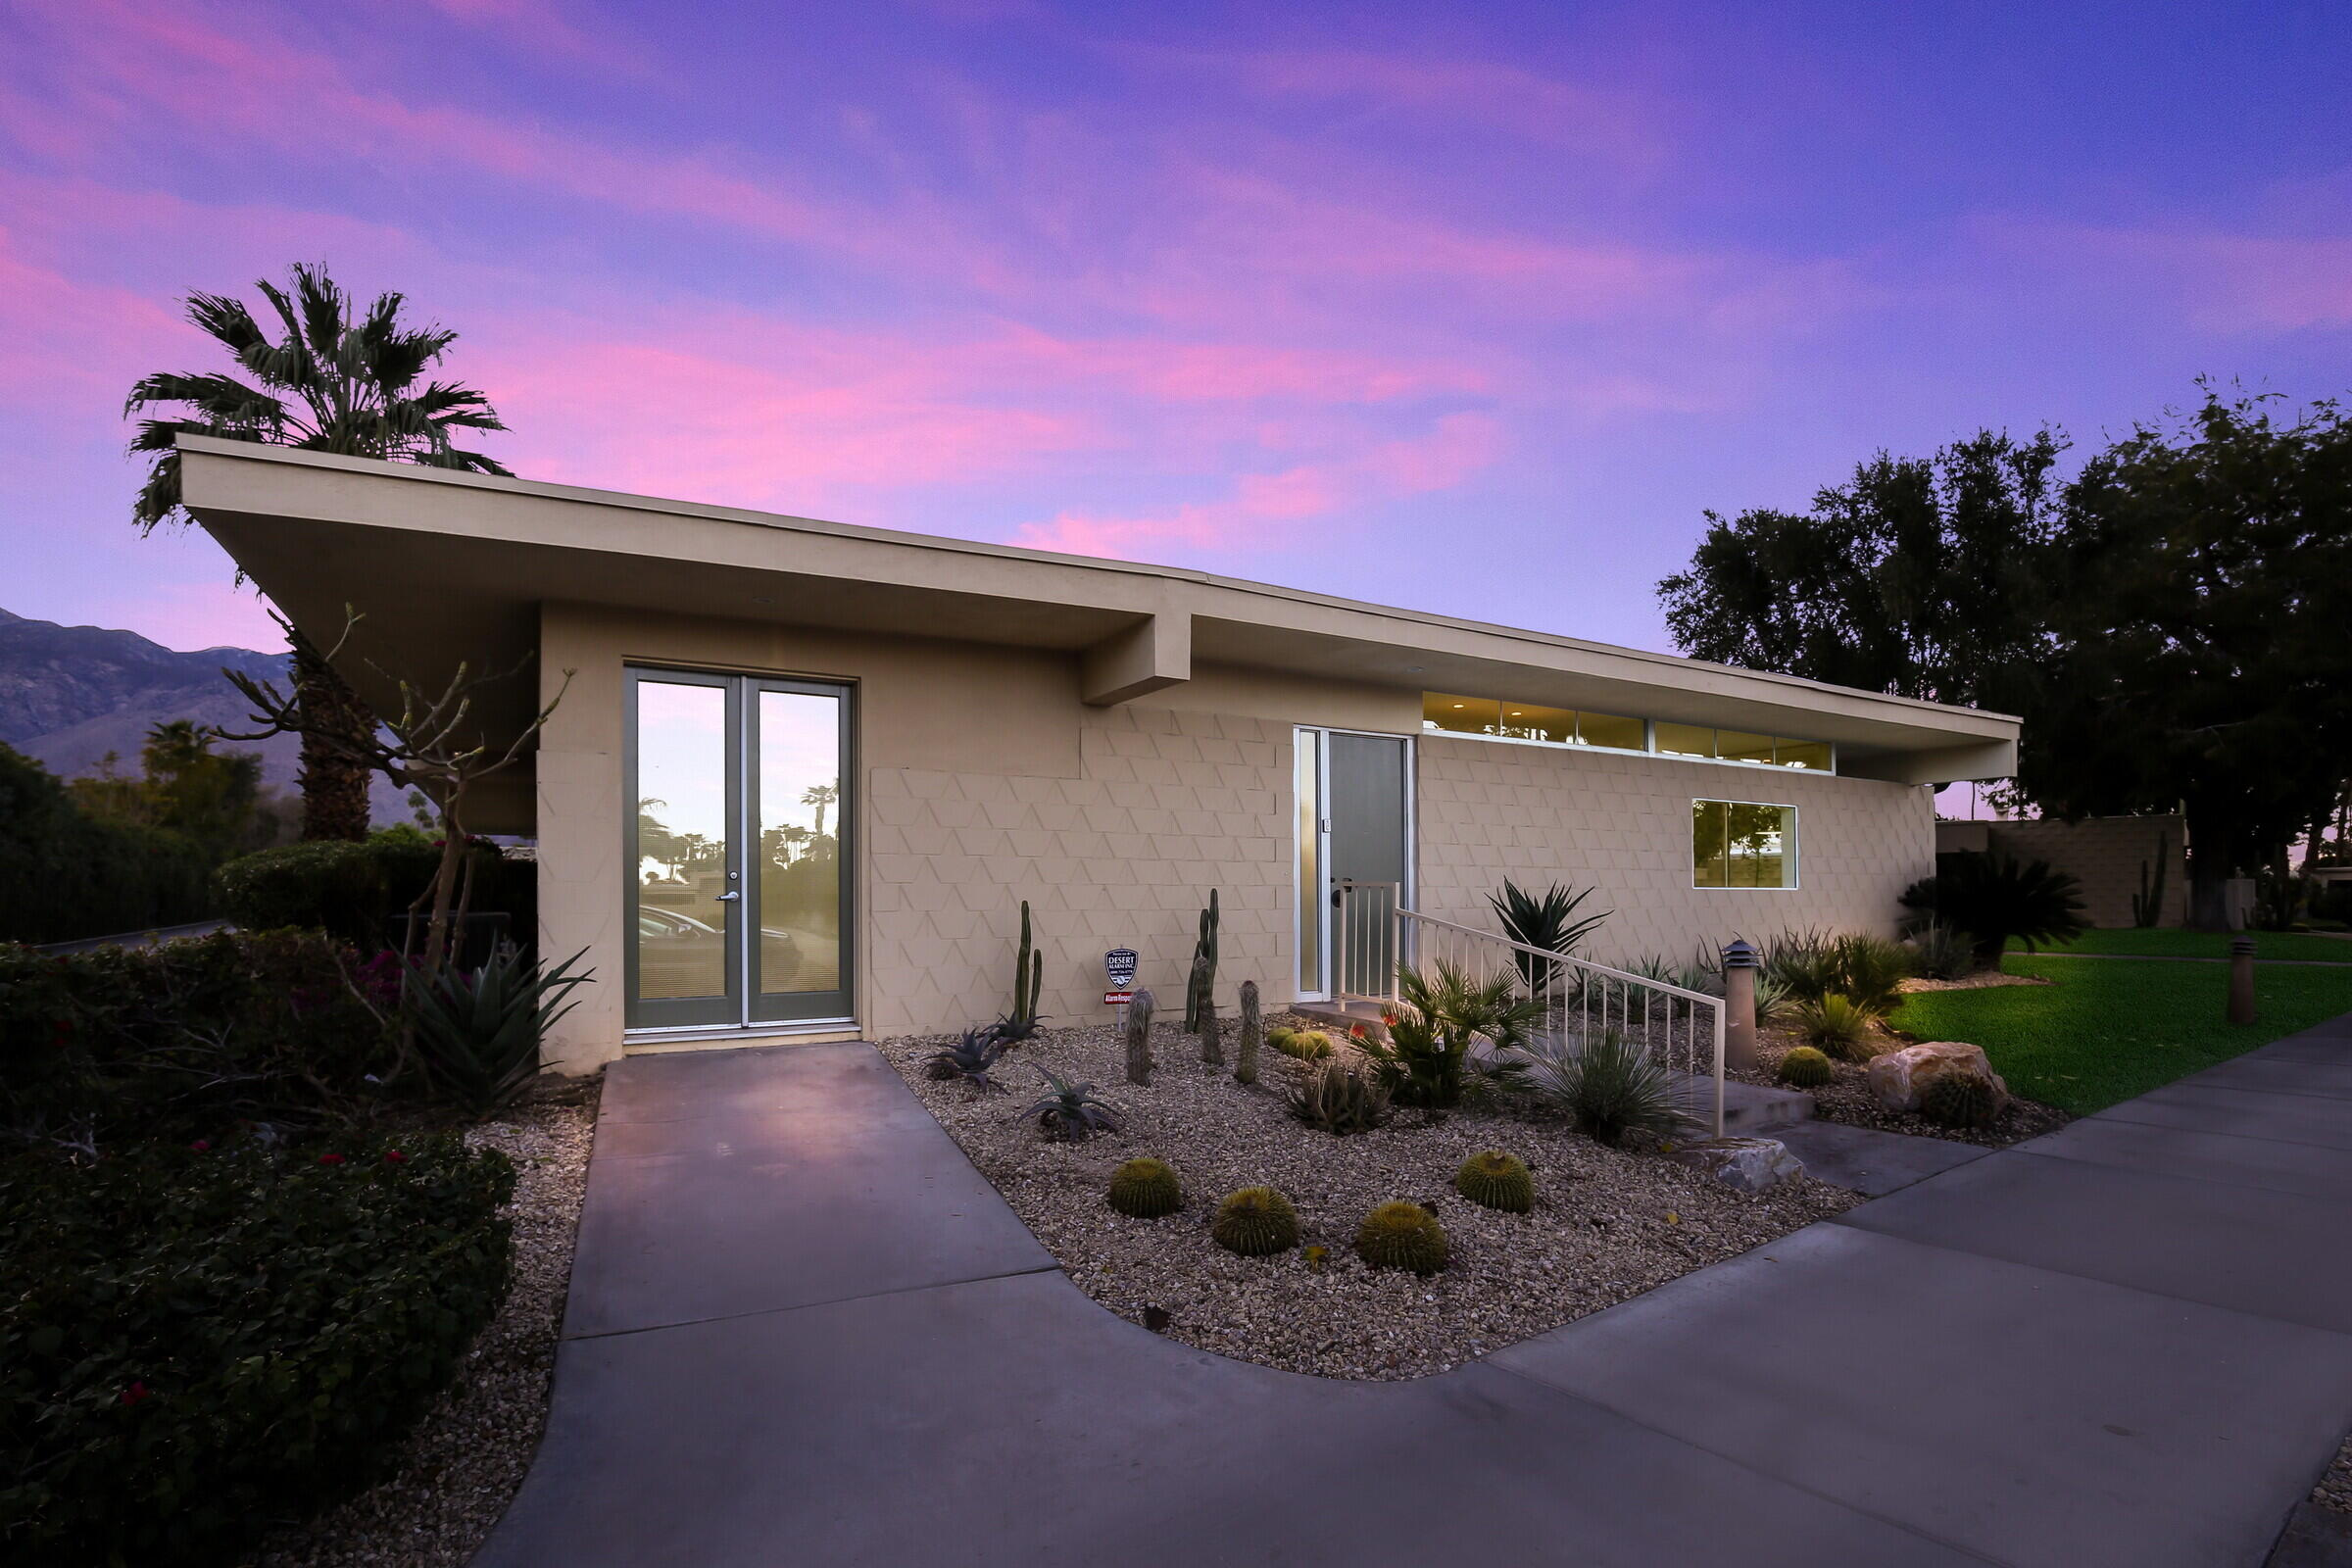 Completely remodeled to retain its Mid-Century Modern aesthetic while showcasing on-trend, high-style finishes, fixtures and appointments, this open and spacious condo presents a sublime opportunity in Palm Springs' guard-gated Seven Lakes Country Club. Generously proportioned at approx. 1,962 s.f. on one level, the chic residence is illuminated by period-perfect clerestory windows, floor-to-ceiling sliding-glass doors, and contemporary LED lighting fixtures. Sleek tile flooring, high ceilings and crisp white walls provide a canvas on which to imprint your preferred lifestyle. Entertain in a living room with corner fireplace that opens to the front yard via French doors, and enjoy indoor/outdoor living in a family, dining and kitchen area with access to a spacious covered patio. A playful modern accent wall adorns the family room, which flows easily to the dining room and a brand-new kitchen with quartz countertops, a long bar-height counter, gloss-white and wood cabinetry, and a full suite of stainless steel appliances. Two bedrooms and two fashionable baths include a primary suite with patio, mirrored wardrobe doors, illuminated vanity mirror, walk-in shower and dual sinks. Out of the line of fire yet only steps away from the fairways this home is conveniently located next to the community pool and parking area.  A must see at Seven Lakes Country Club.